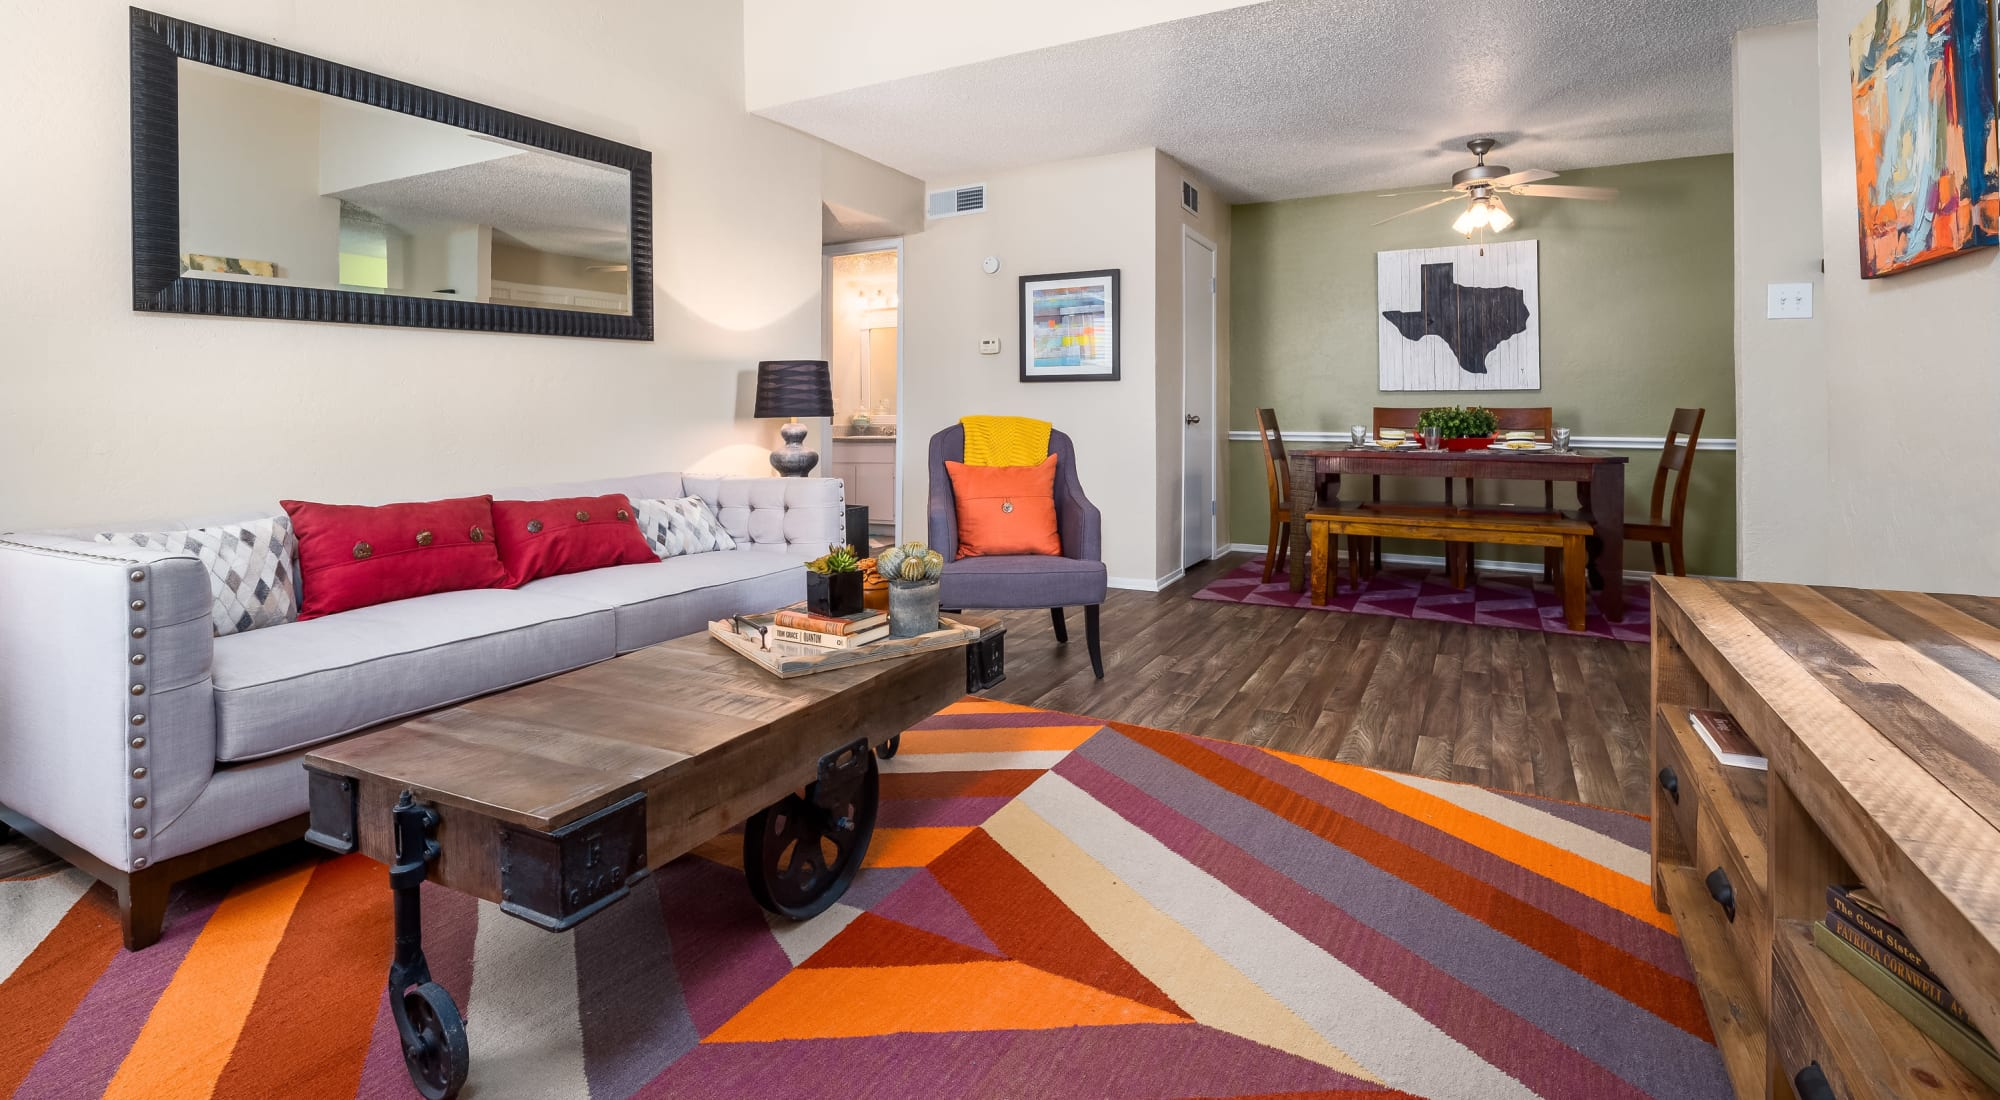 Apply to live at The Fairways Apartment Homes in Lee's Summit, Missouri